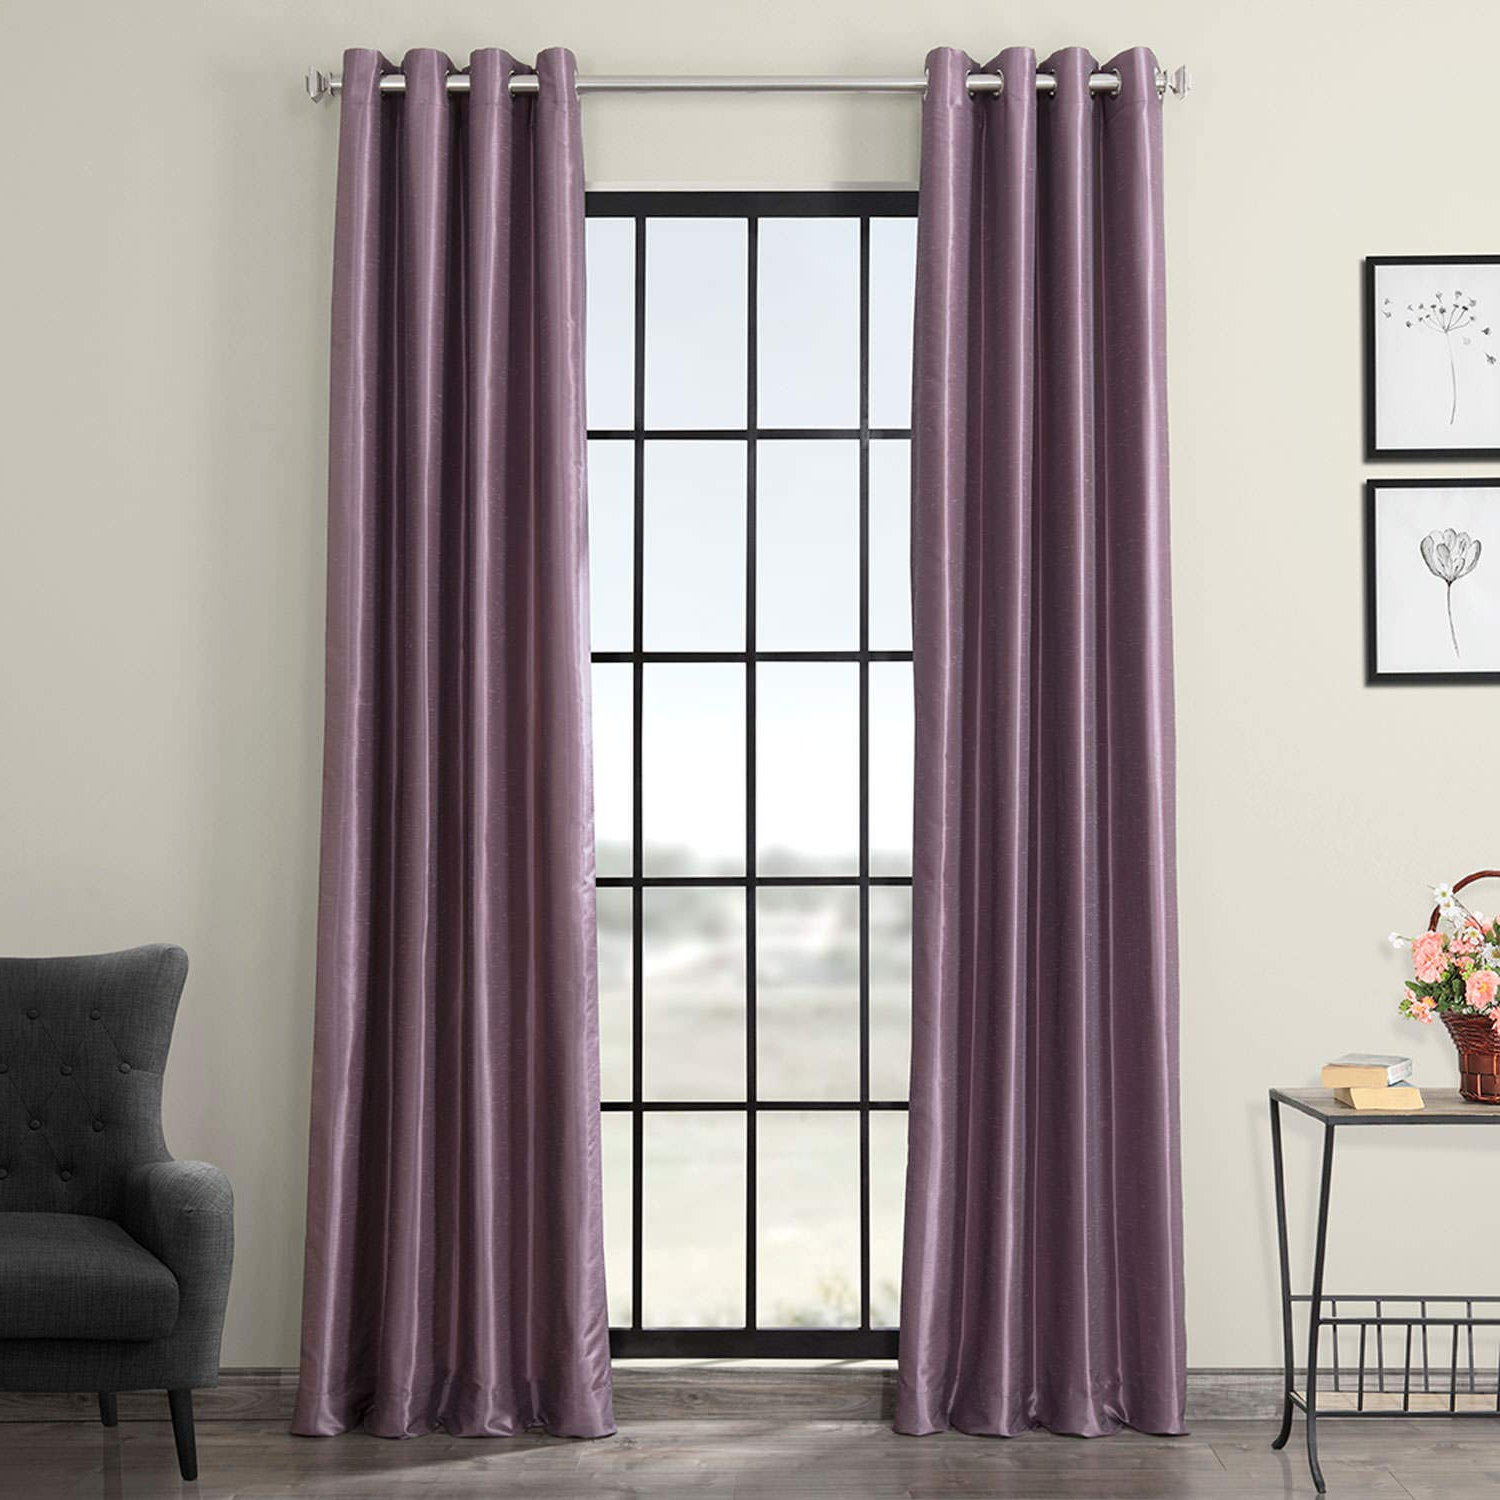 Well Known Half Price Drapes Pdch Kbs11 84 Grbo Grommet Blackout Vintage Textured Faux Dupioni Silk Curtain, Smokey Plum For True Blackout Vintage Textured Faux Silk Curtain Panels (View 12 of 20)